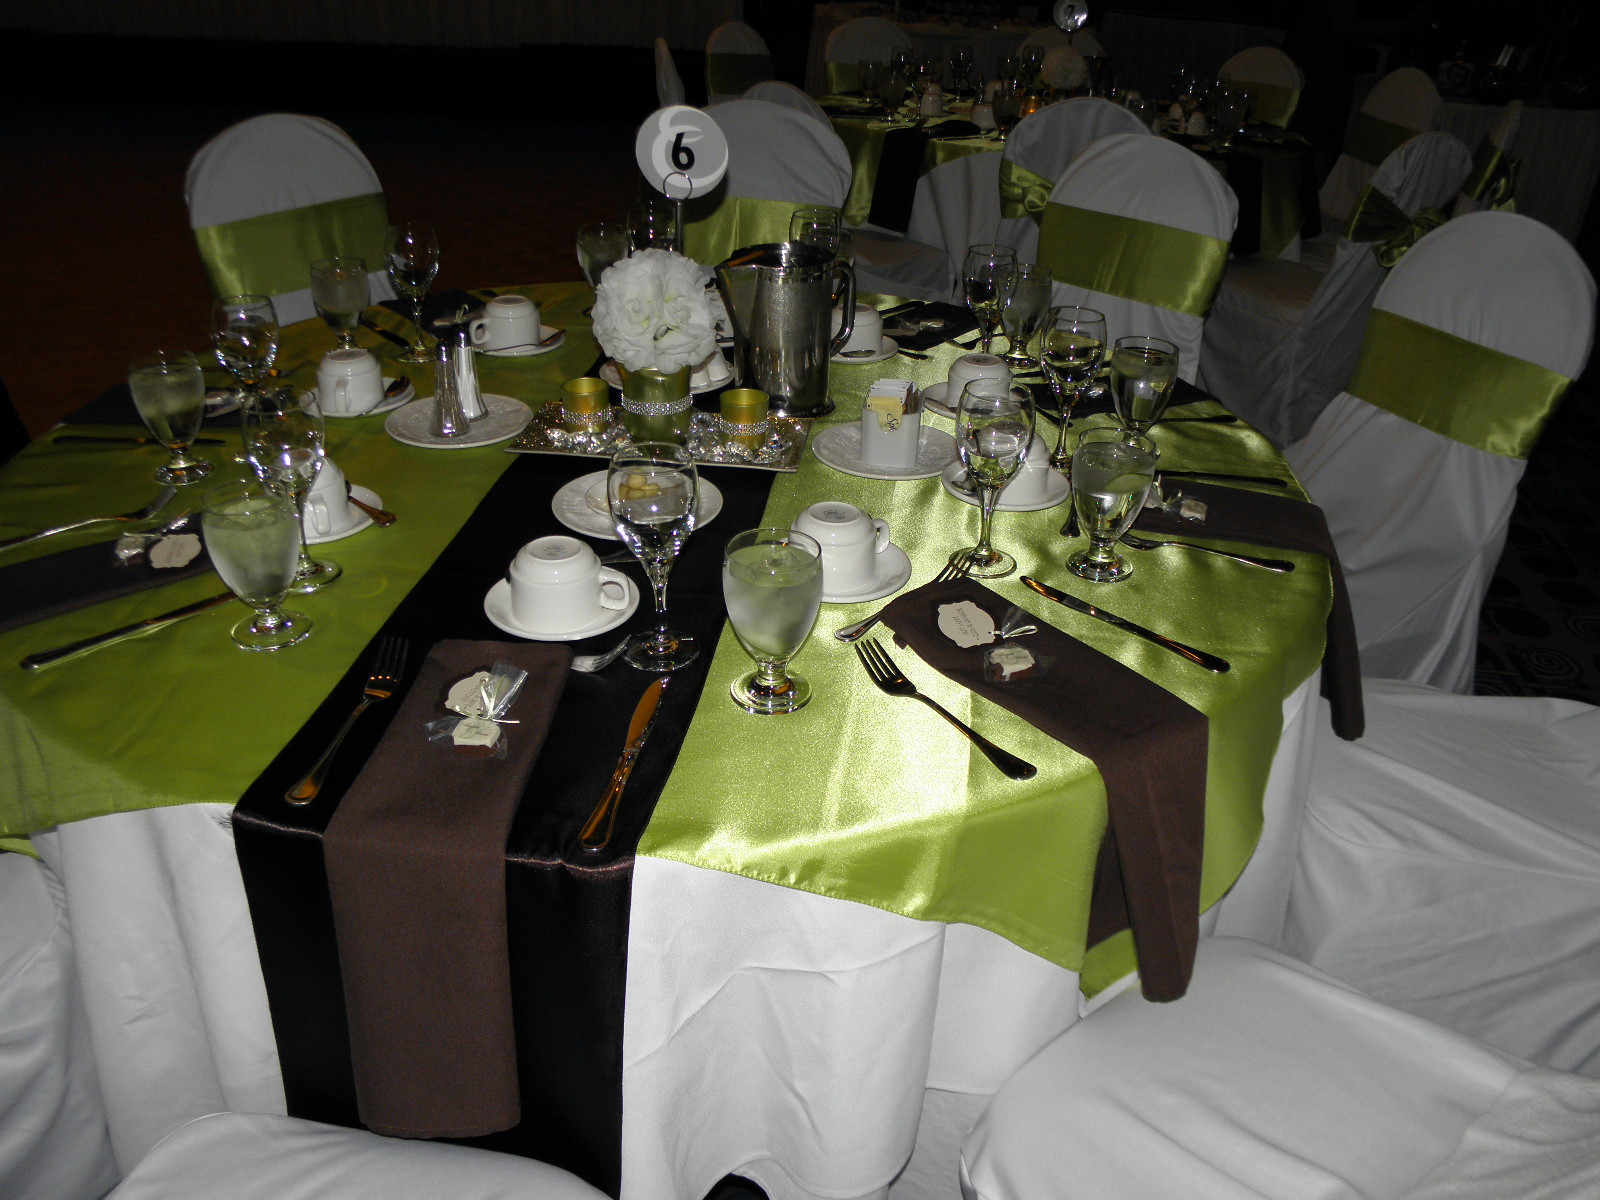 wedding chair cover rentals edmonton breezesta adirondack chairs pictures of past weddings all west